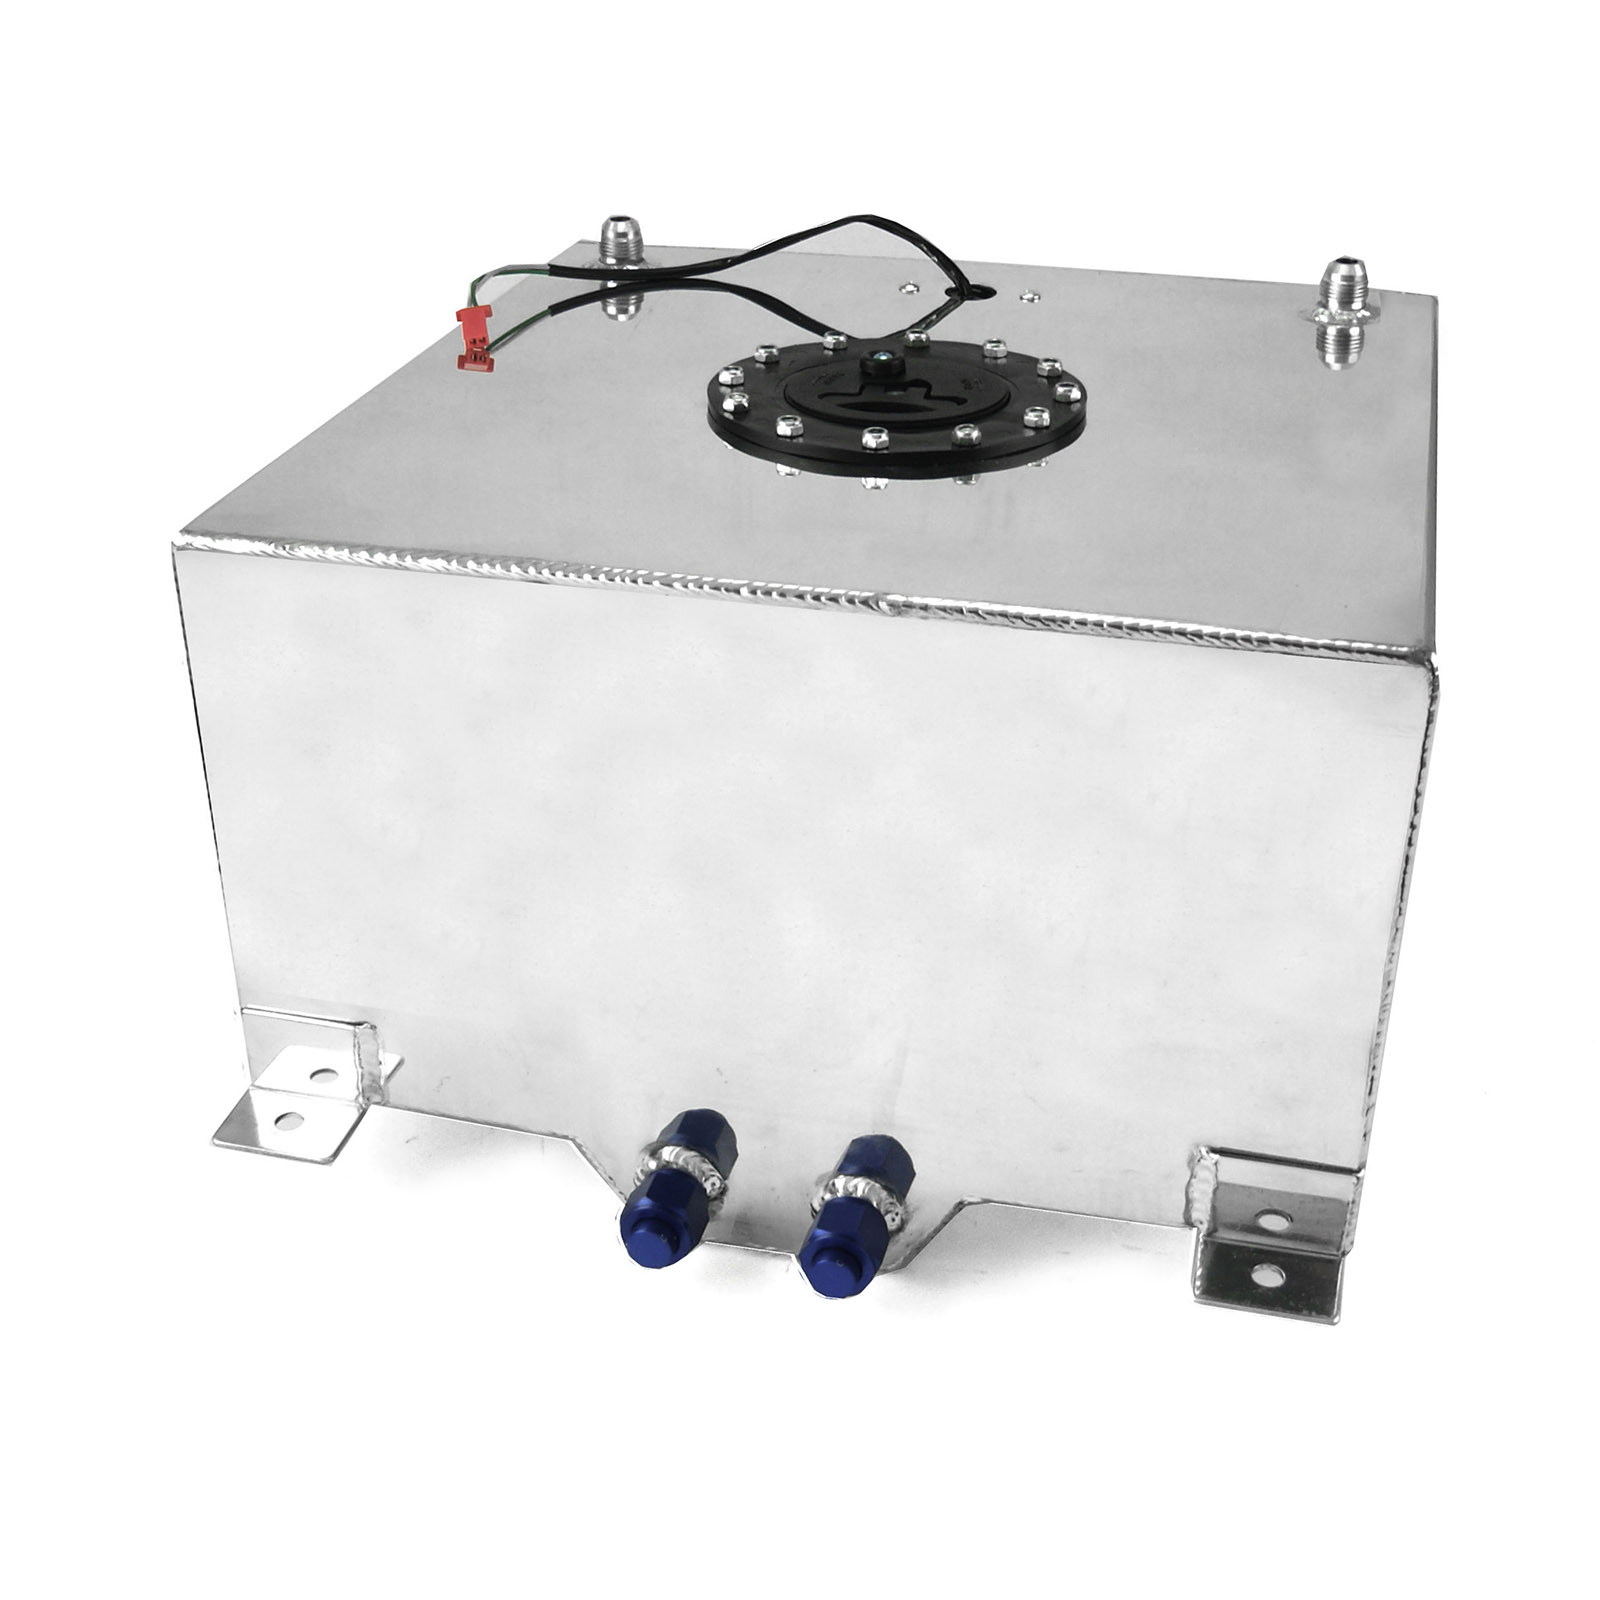 10 Gallon / 38 Litre Lightweight Polished Aluminum Fuel Cell w/ Sender